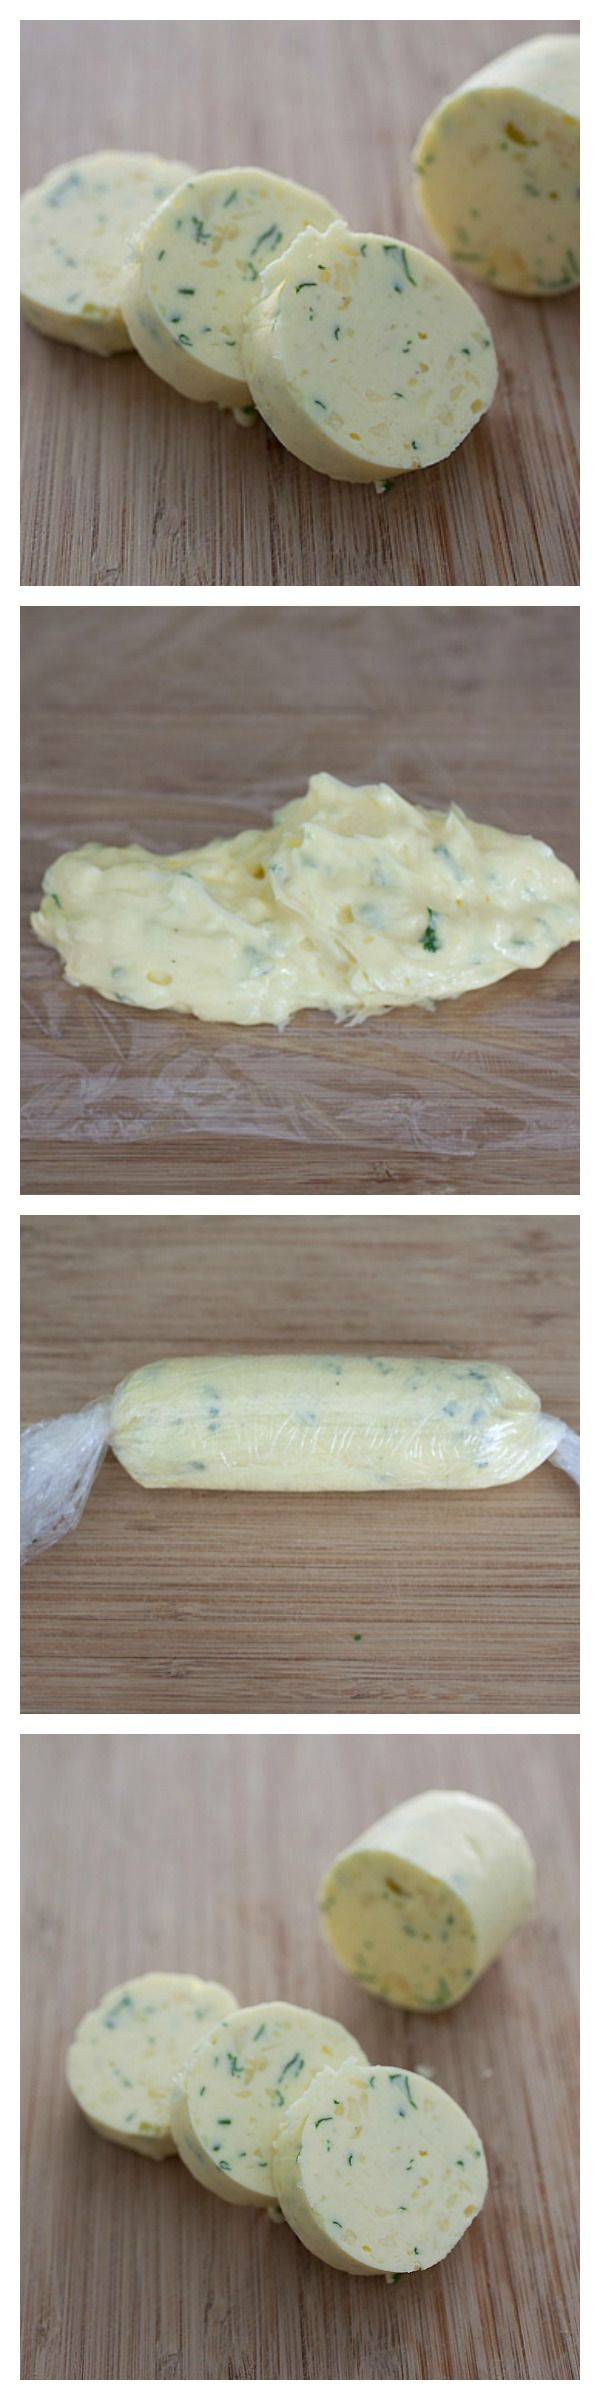 Homemade Garlic Herb Butter Recipe. So easy to make and you can use it for so many everyday recipes! http://rasamalaysia.com